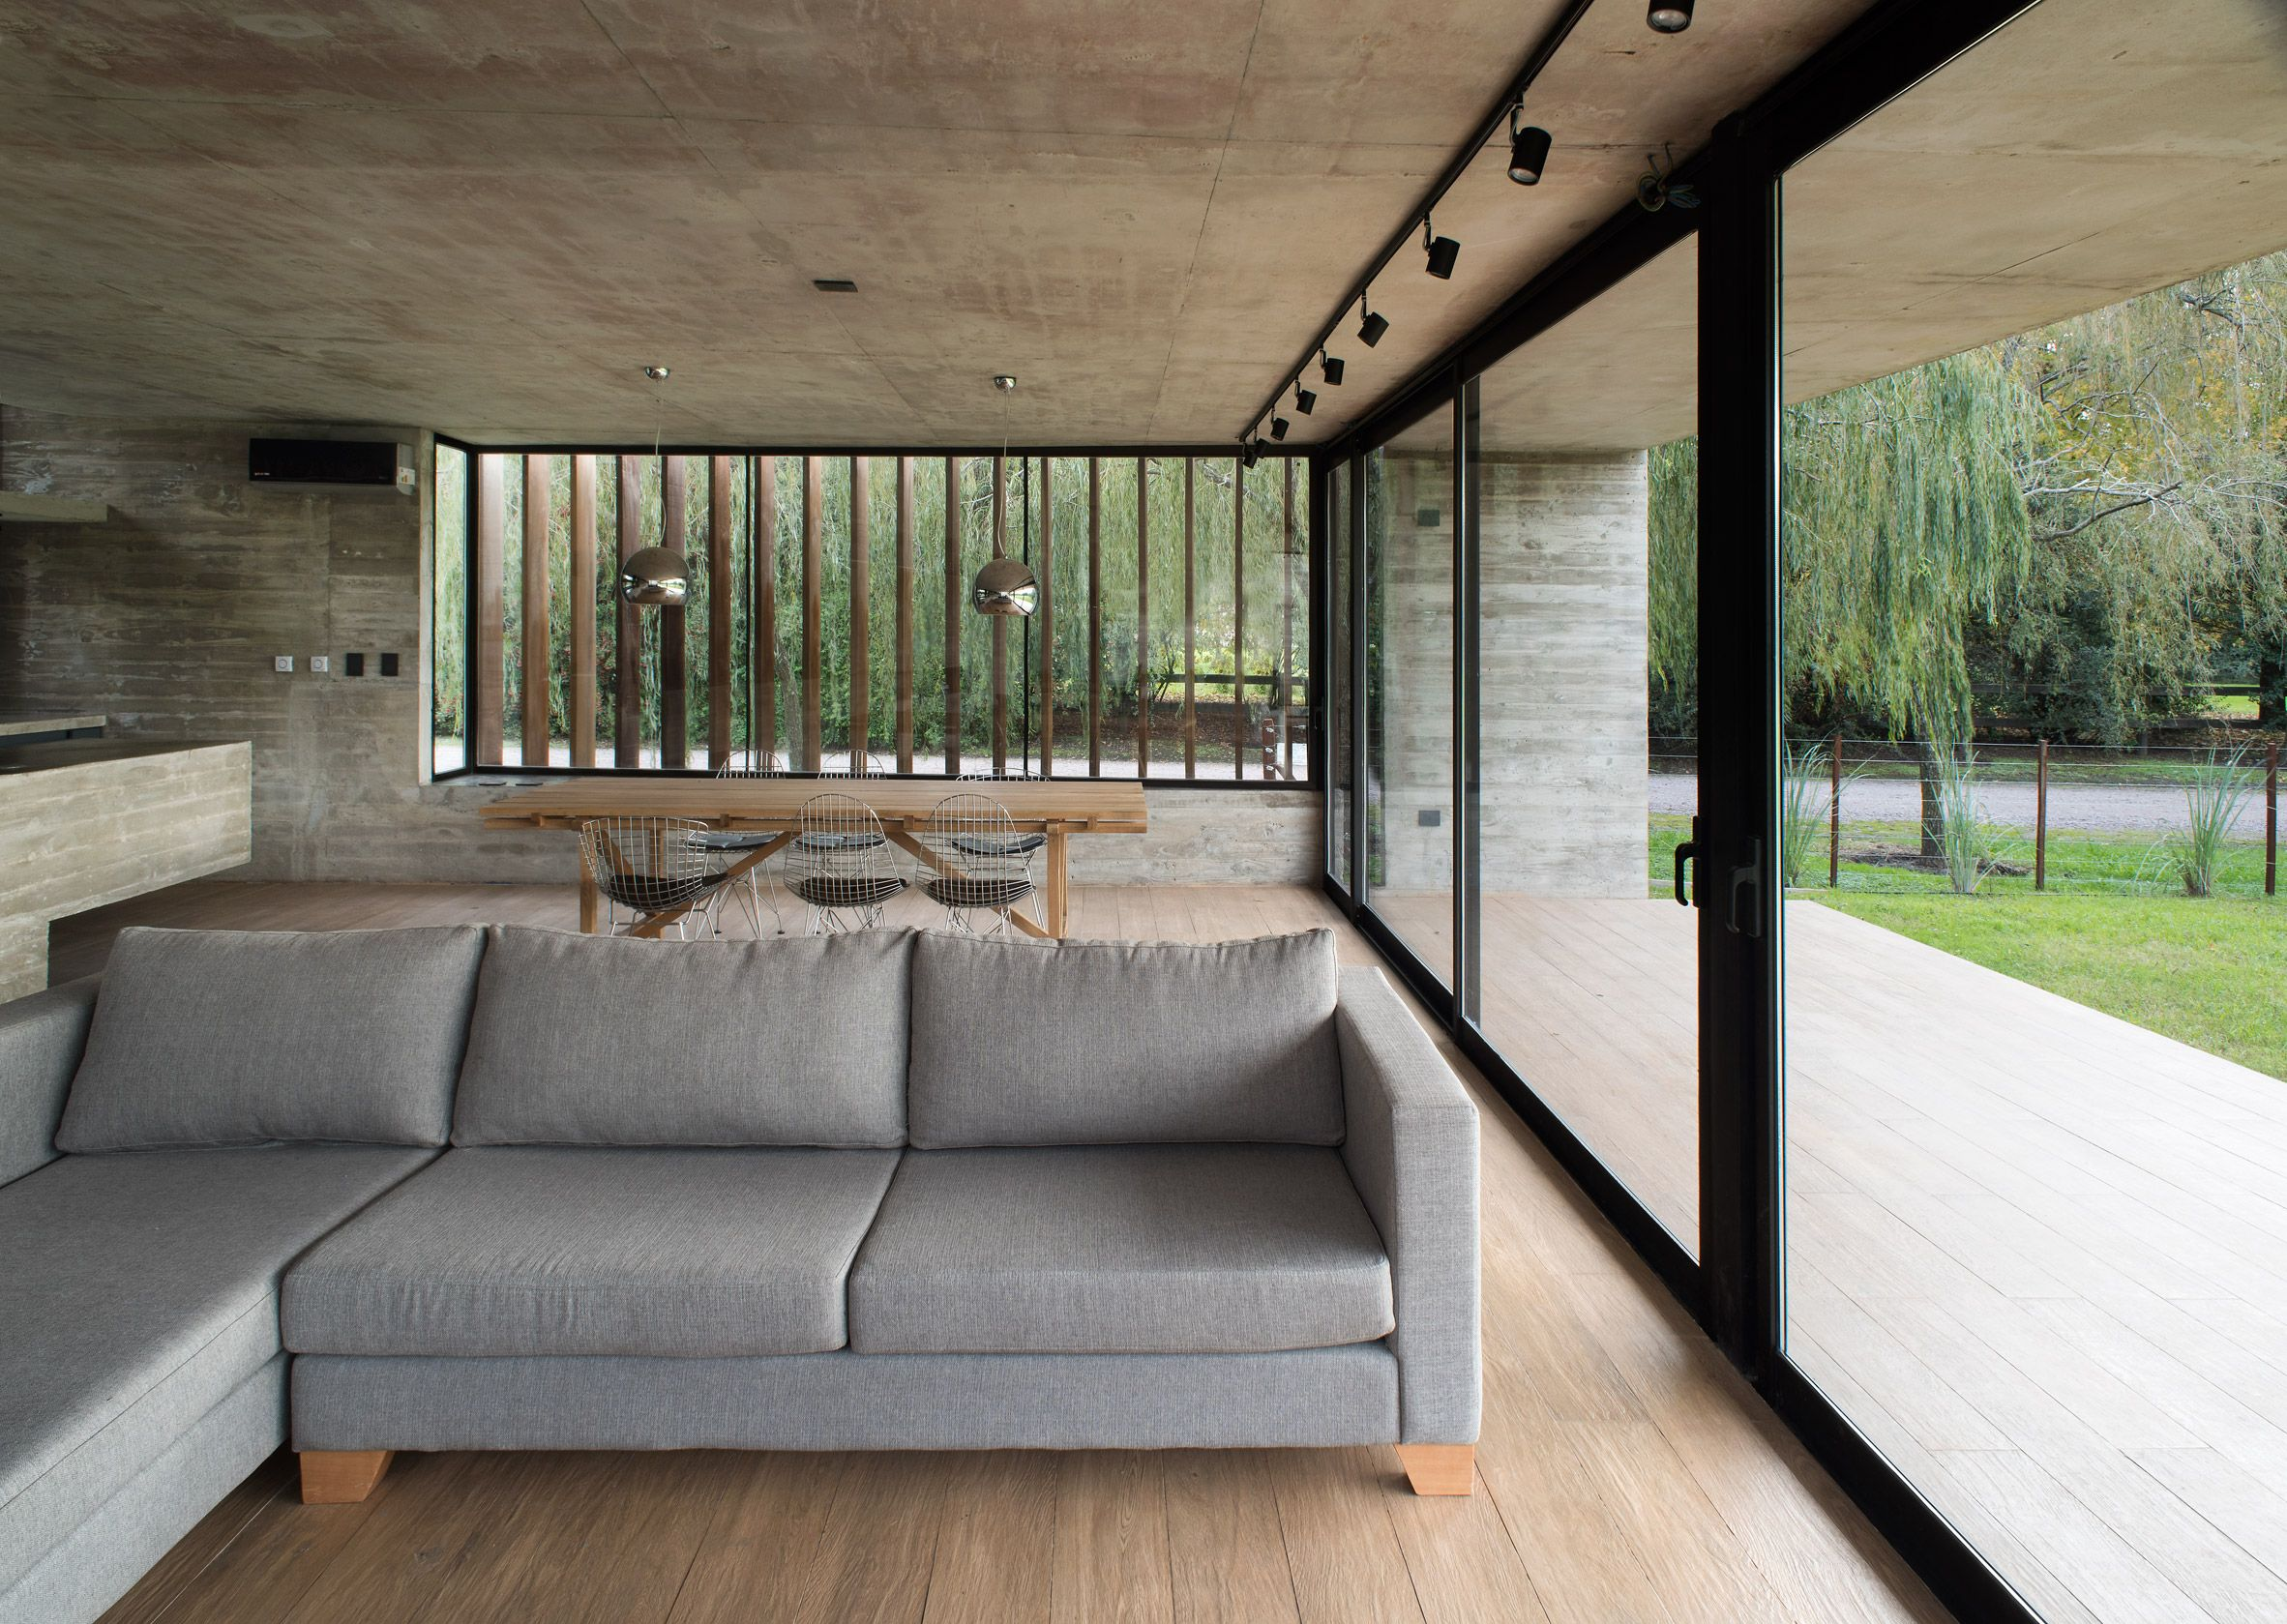 A Raised Concrete Slab Floor Serves As The Entrance While Inside A Glass Wall Reveals The Internal Courtyard House Concrete House Flat Roof Systems